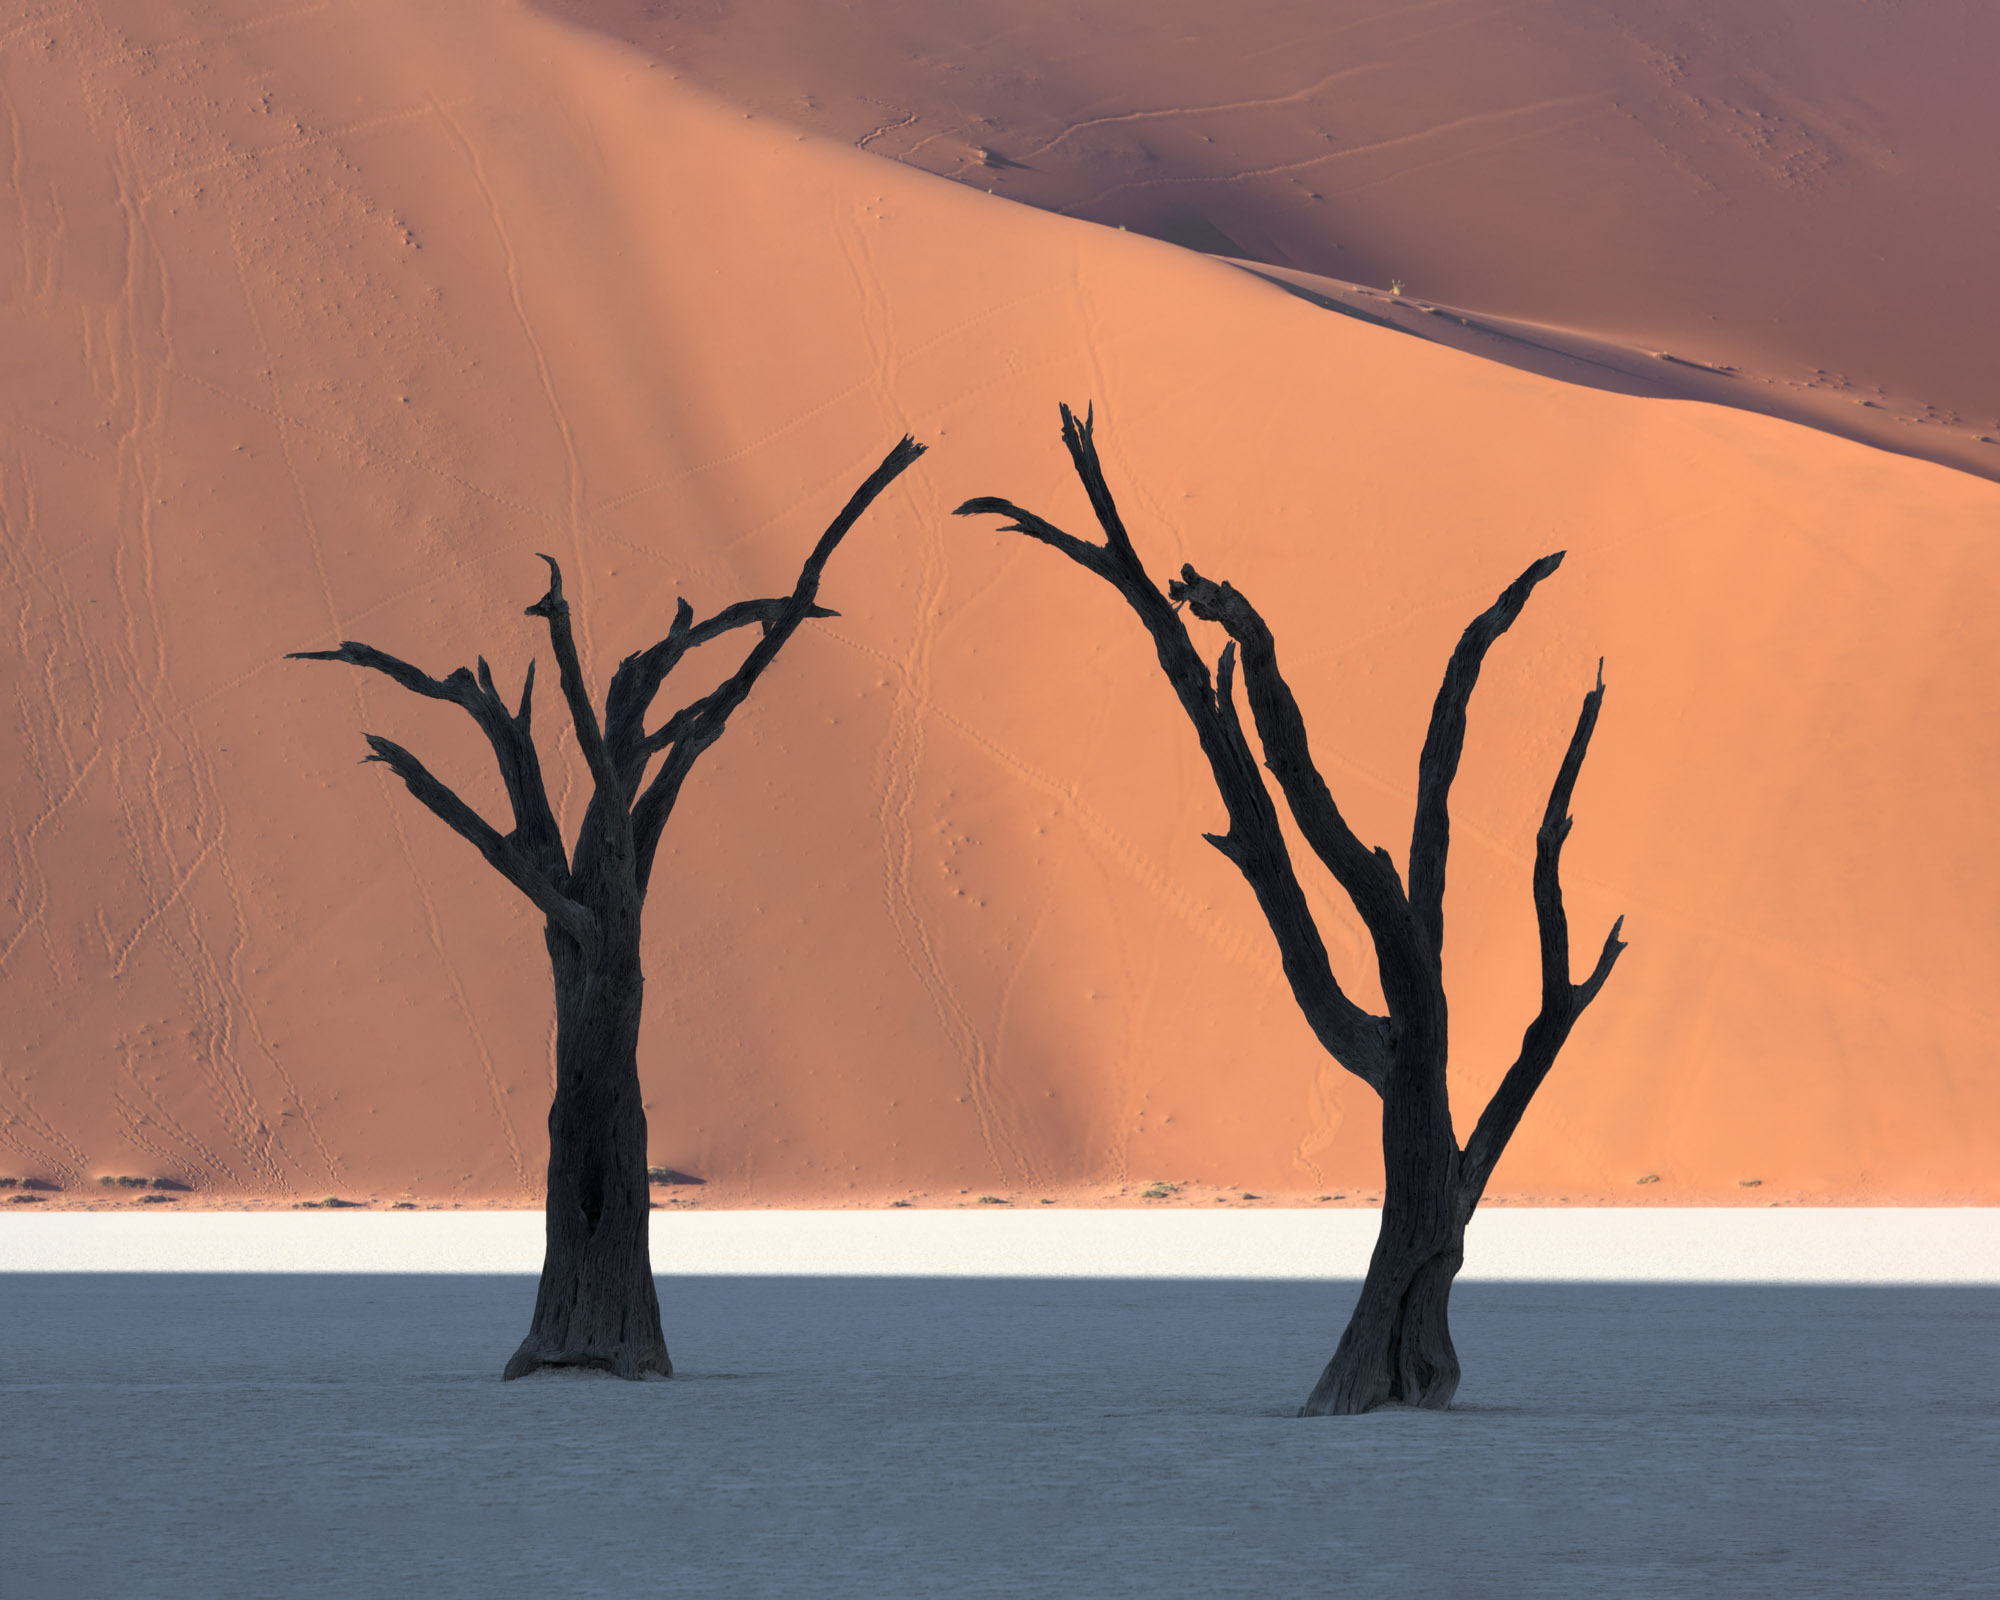 Dead Acacia Trees and Red Dune in Deadvlei, Namibia